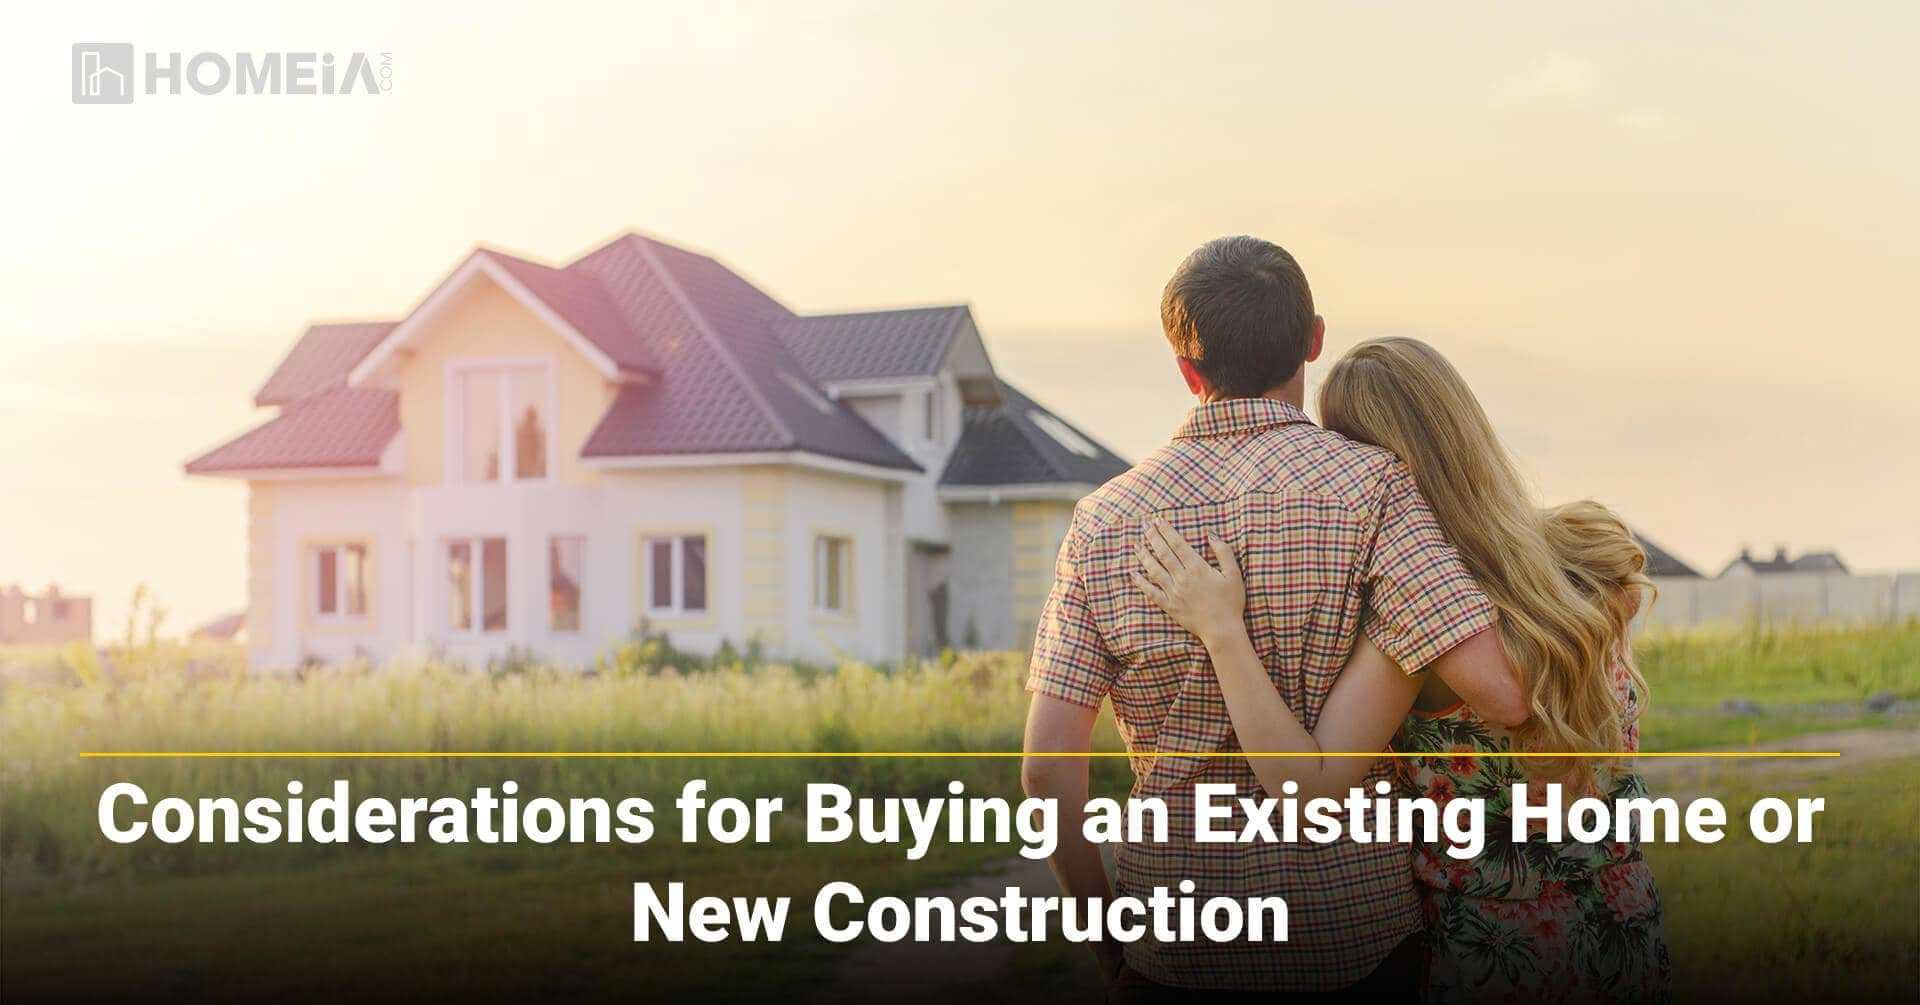 Considerations for Buying an Existing Home or New Construction